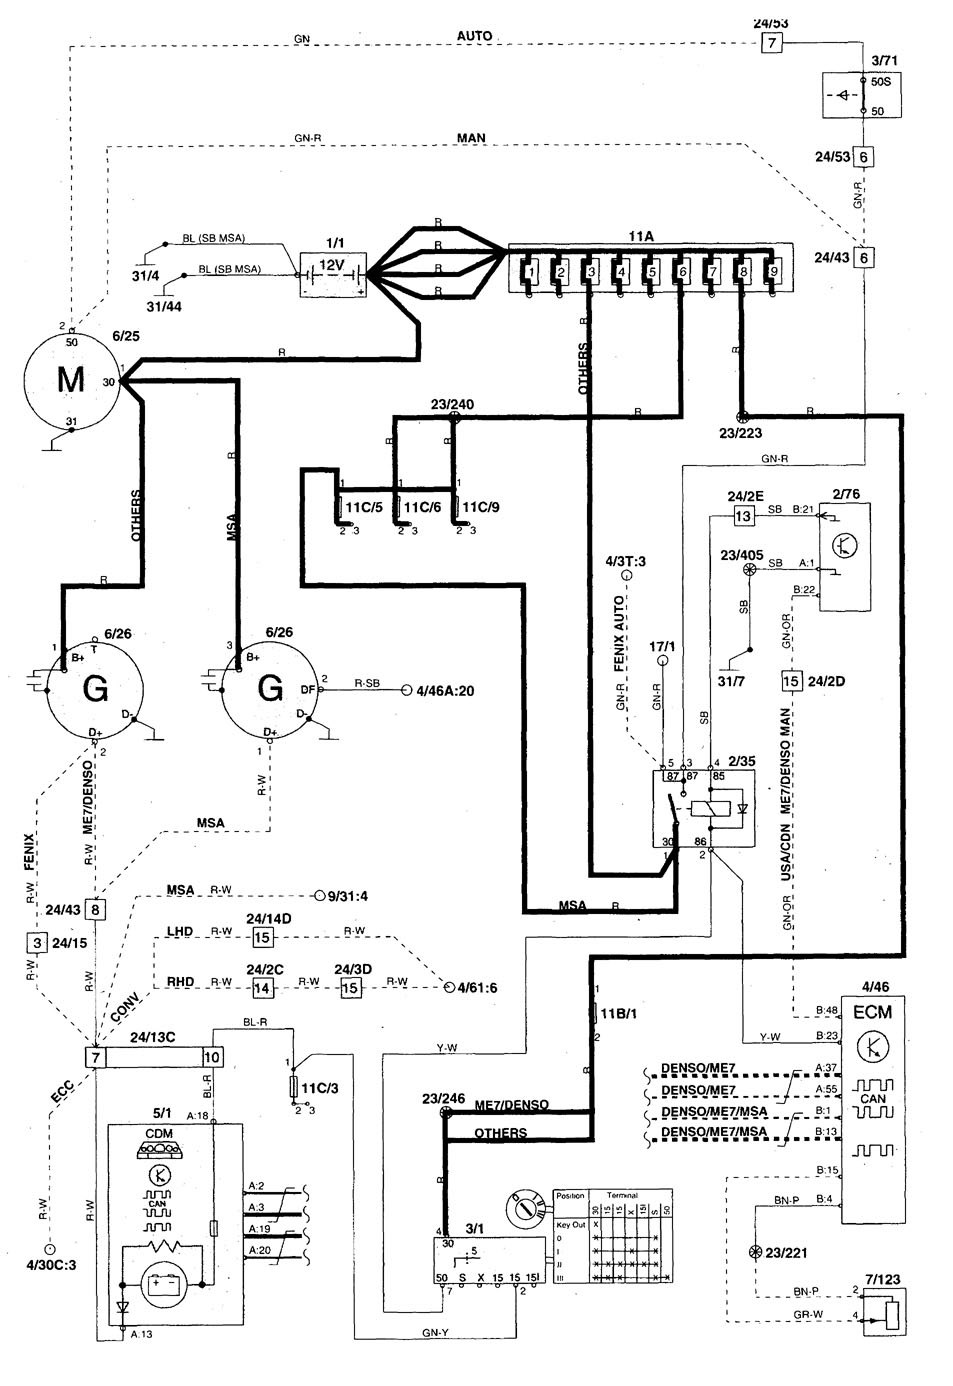 volvo c70 wiring diagram charging system 1 1999 volvo c70 (1999 2004) wiring diagrams charging system volvo c70 2001 wiring diagram at gsmx.co